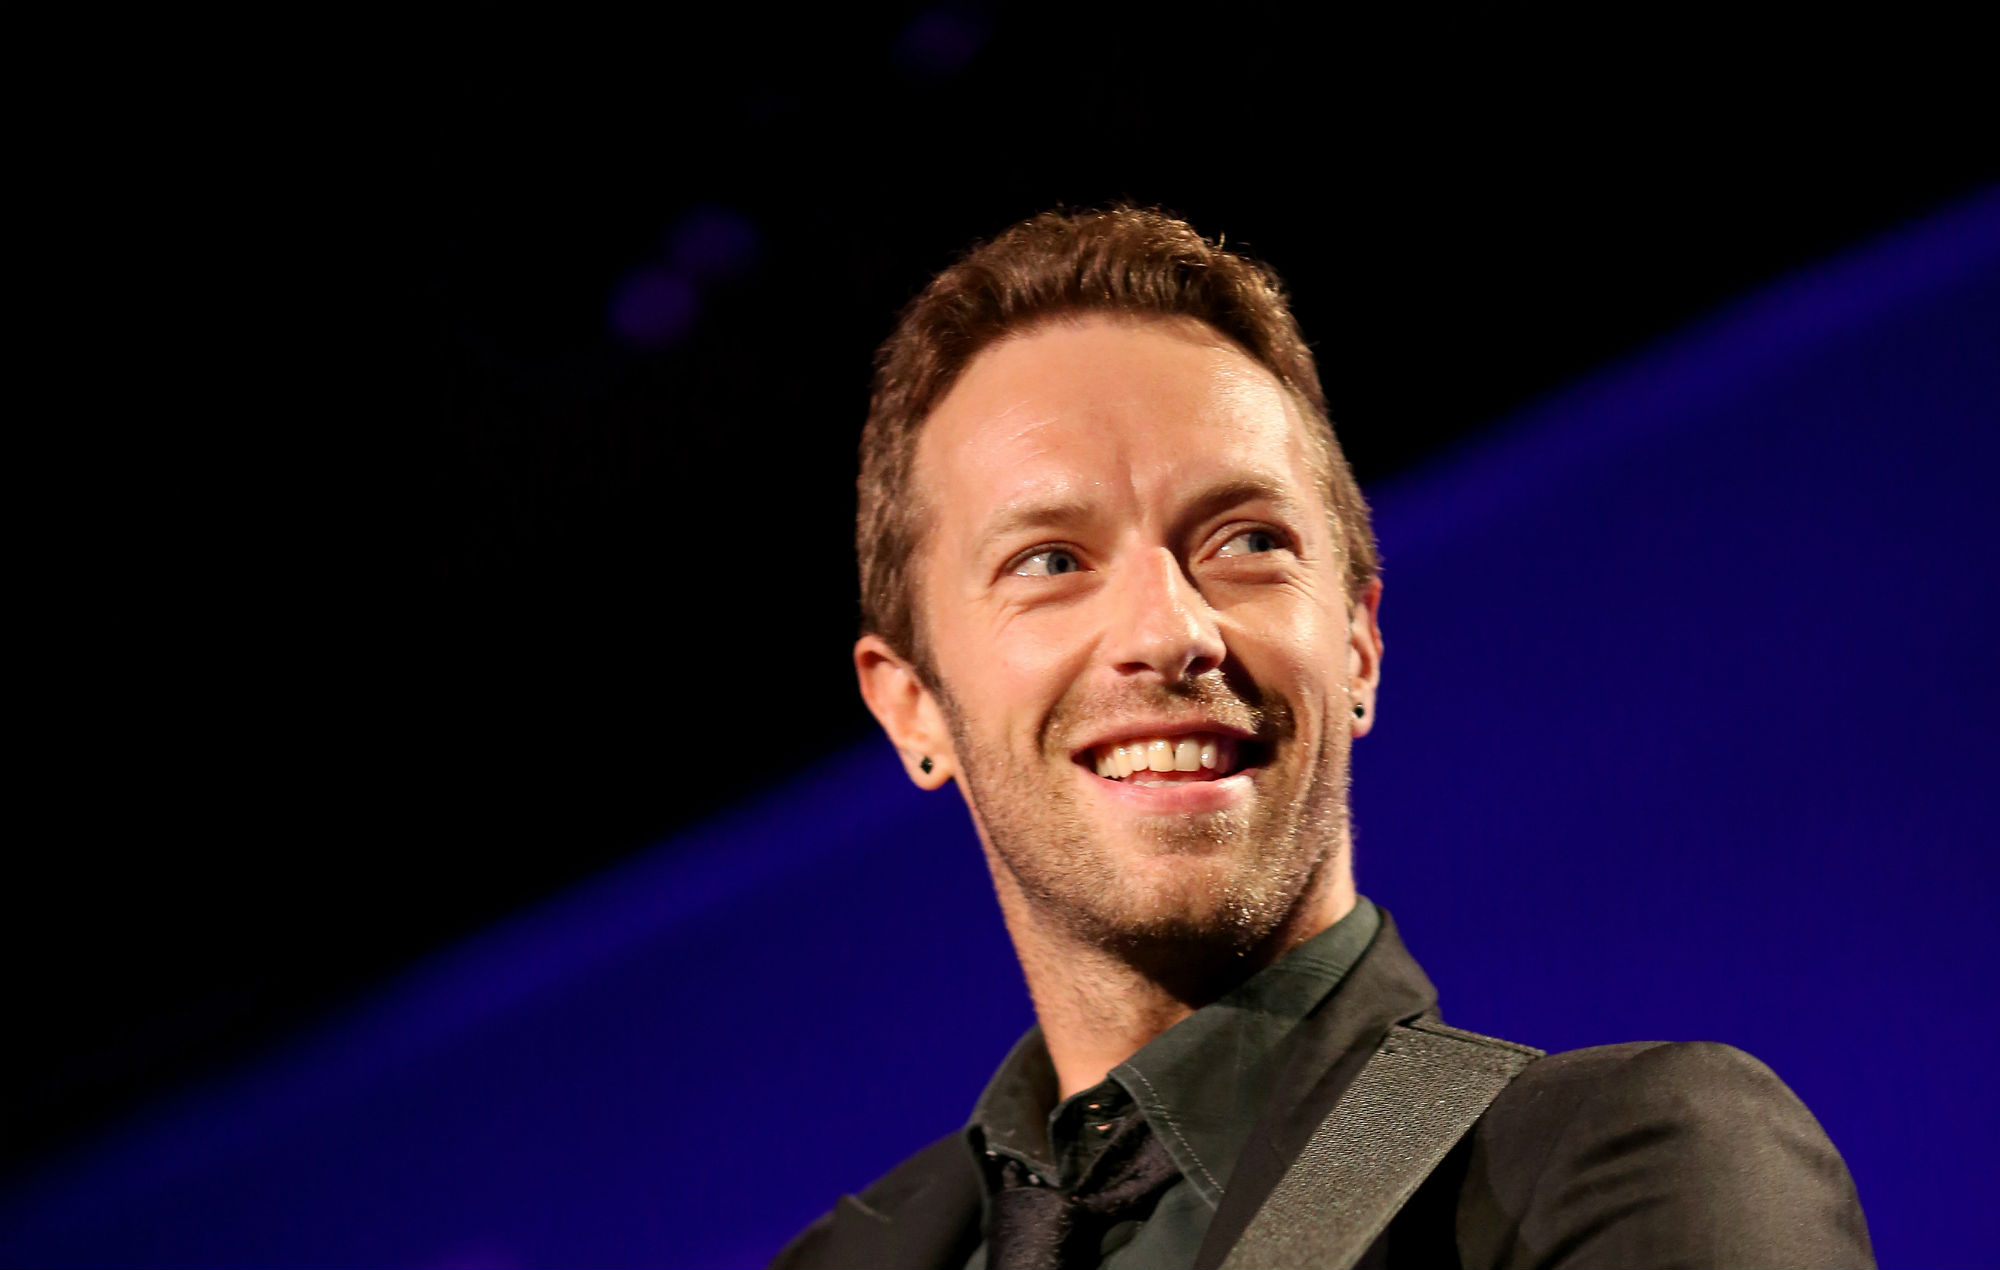 Coldplay's Chris Martin opens up about wrestling with his sexuality when he was growing up